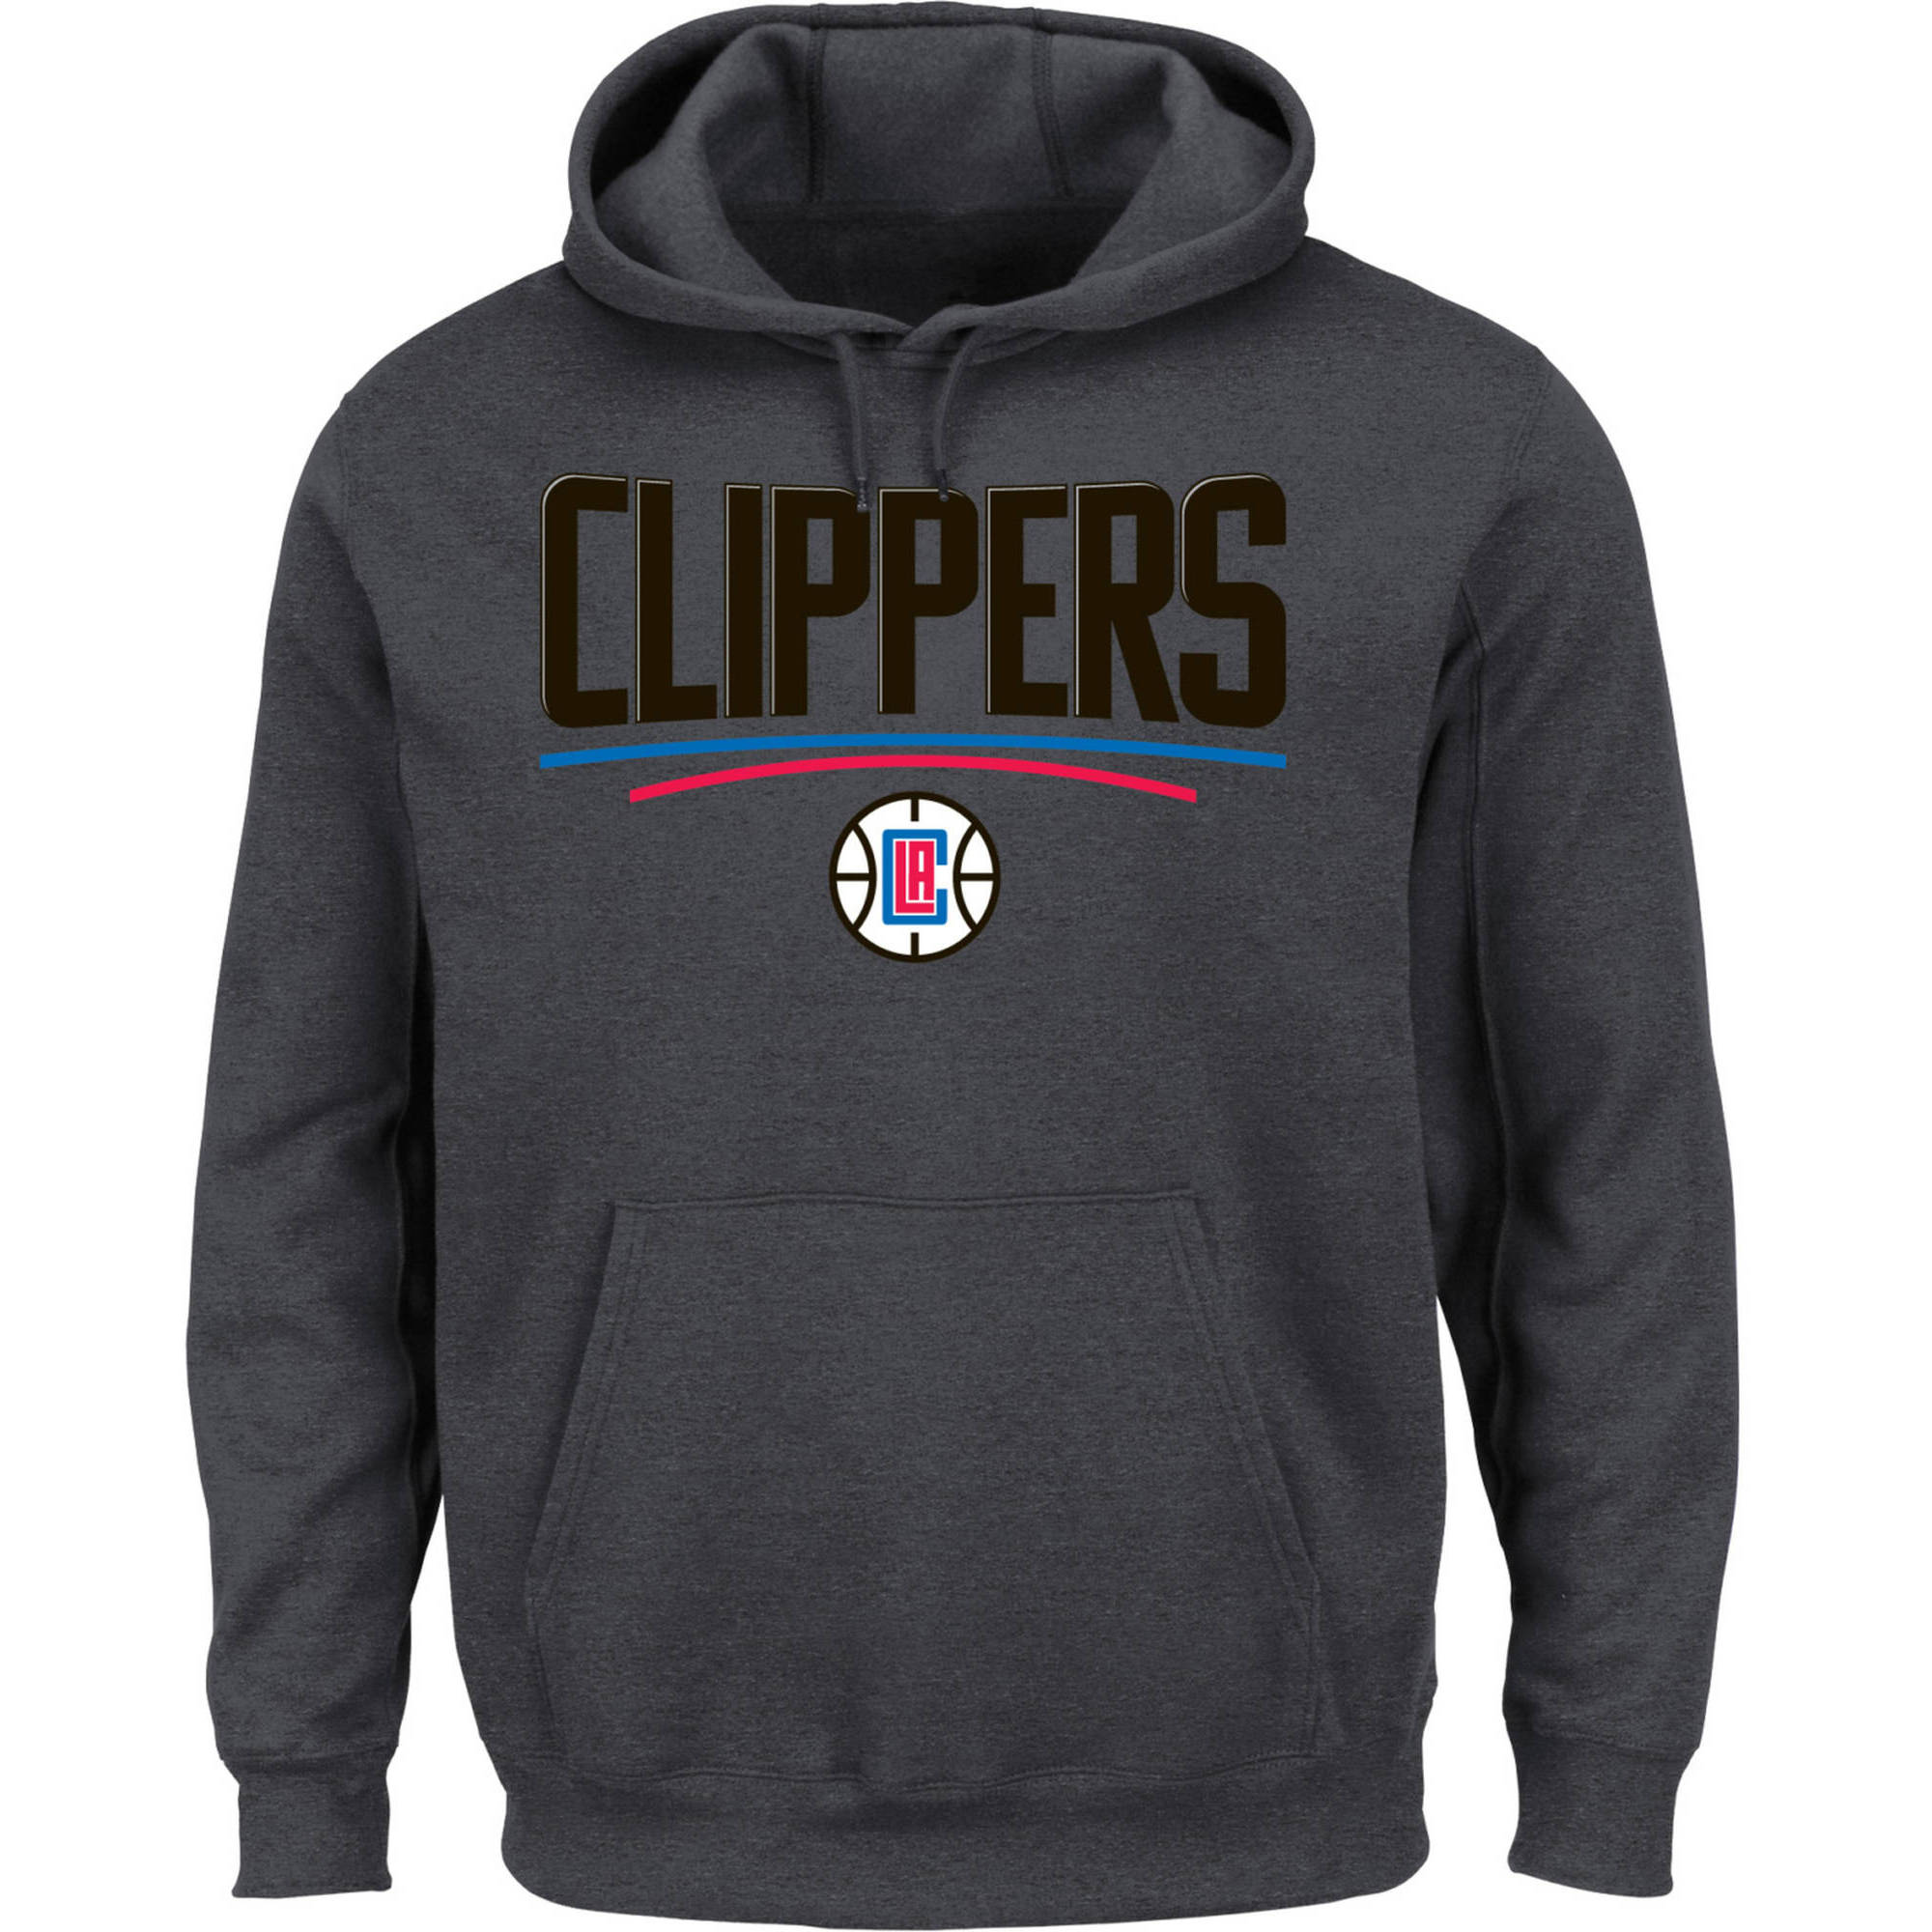 NBA Los Angeles Clippers Big Men's Hooded Fleece Sweatshirt, 2XL